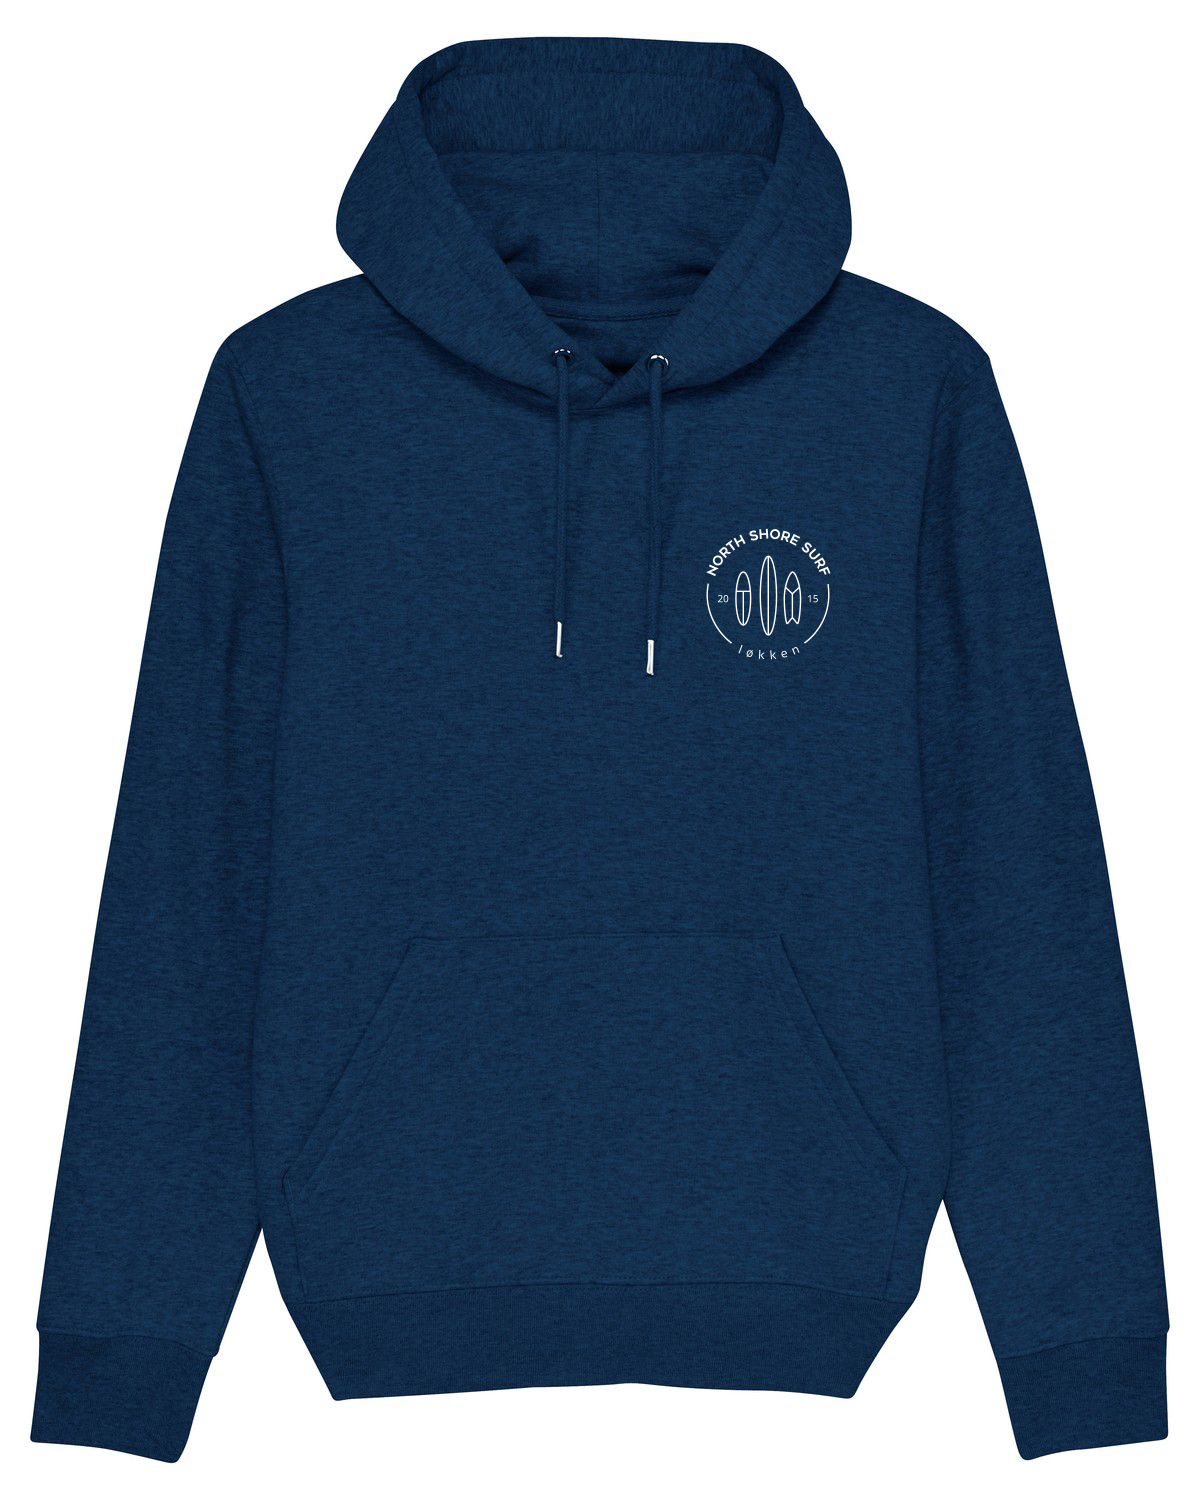 NSS_Surfboard_Logo_Heather_Blue_Hoodie